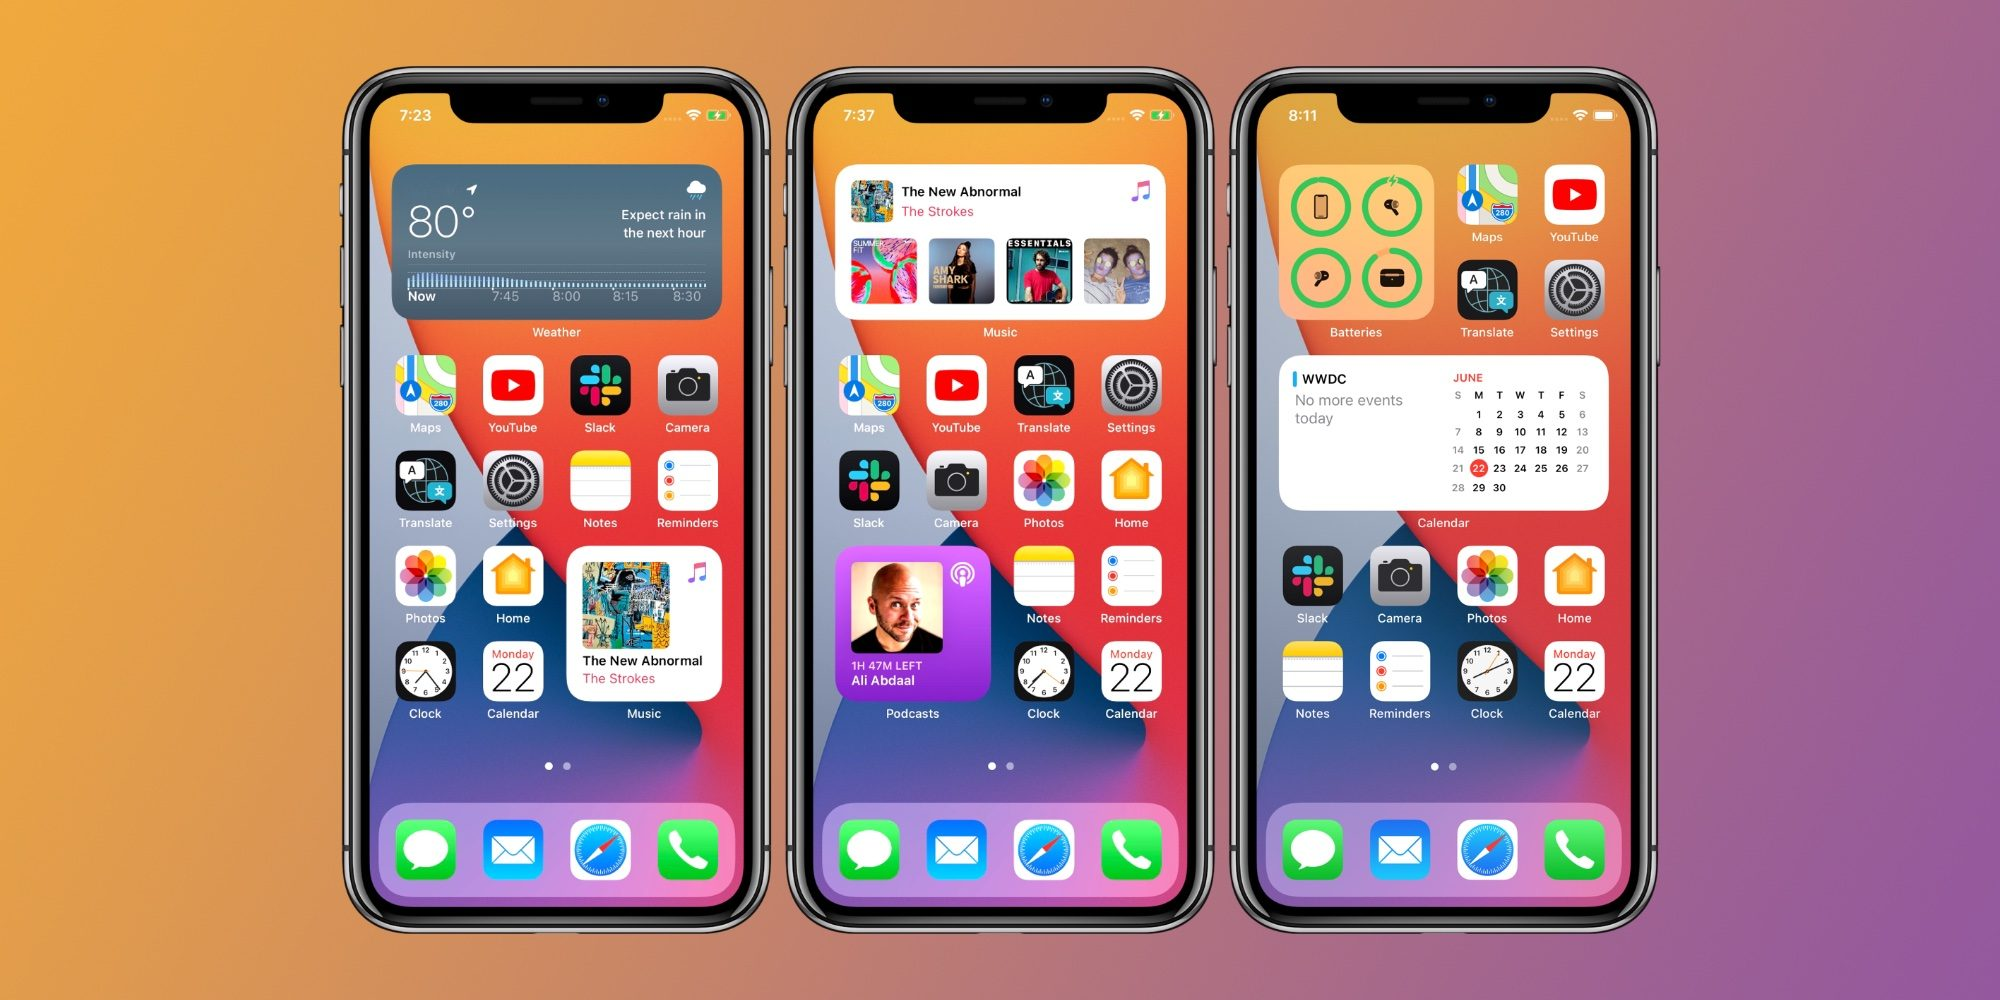 Step by step instructions to get iOS 14-style widgets on your Android phone right now